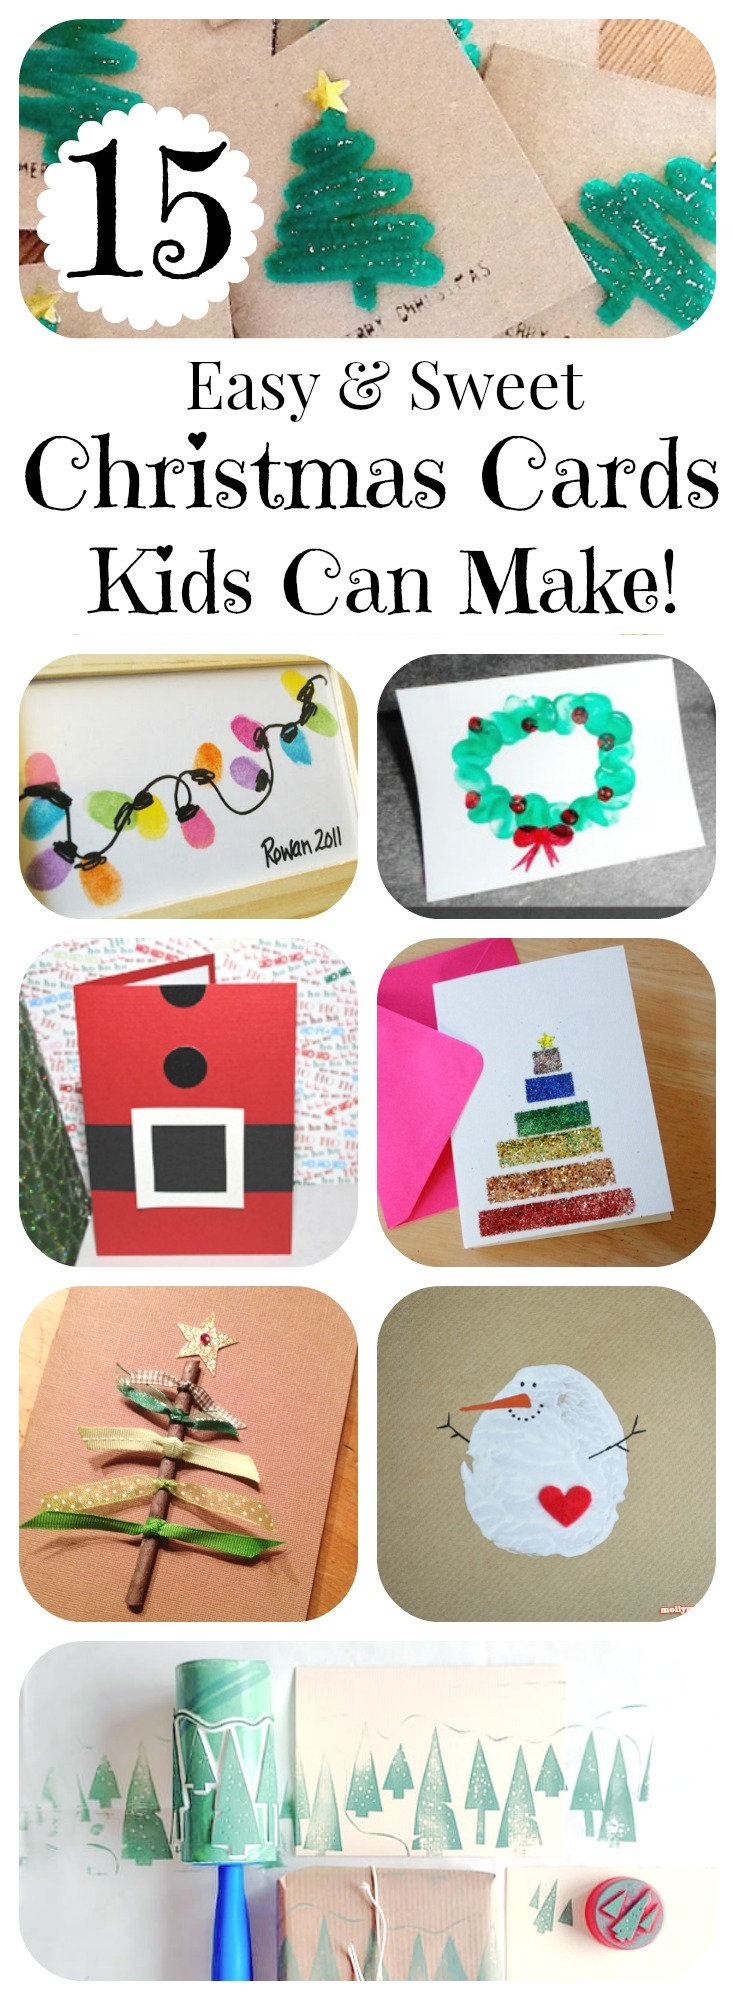 15 DIY Christmas Cards Kids Can Make!  Letters from Santa BlogLetters from S...